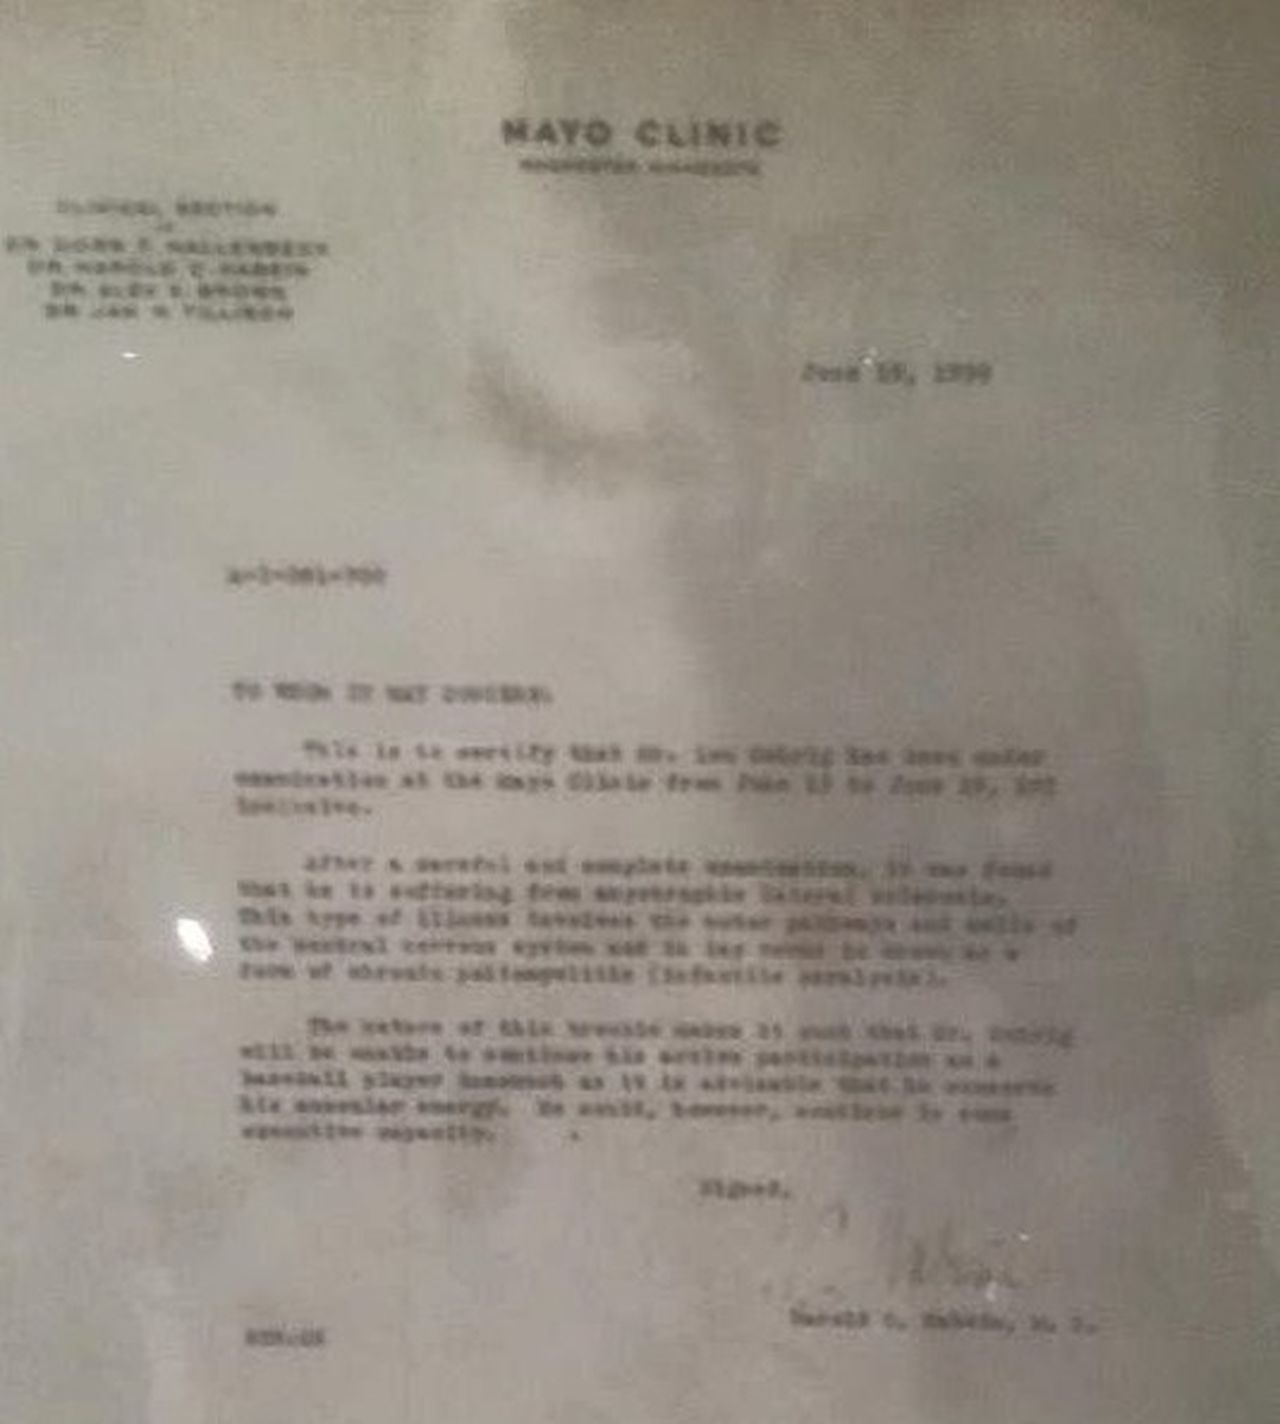 The letter that Lou Gehrig received from Mayo Clinic when he was diagnosed with his eventual life-ending disease (ALS) Als Baseball Gehrig Hall Of Fame Major League Baseball Mayo Clinic Retirement